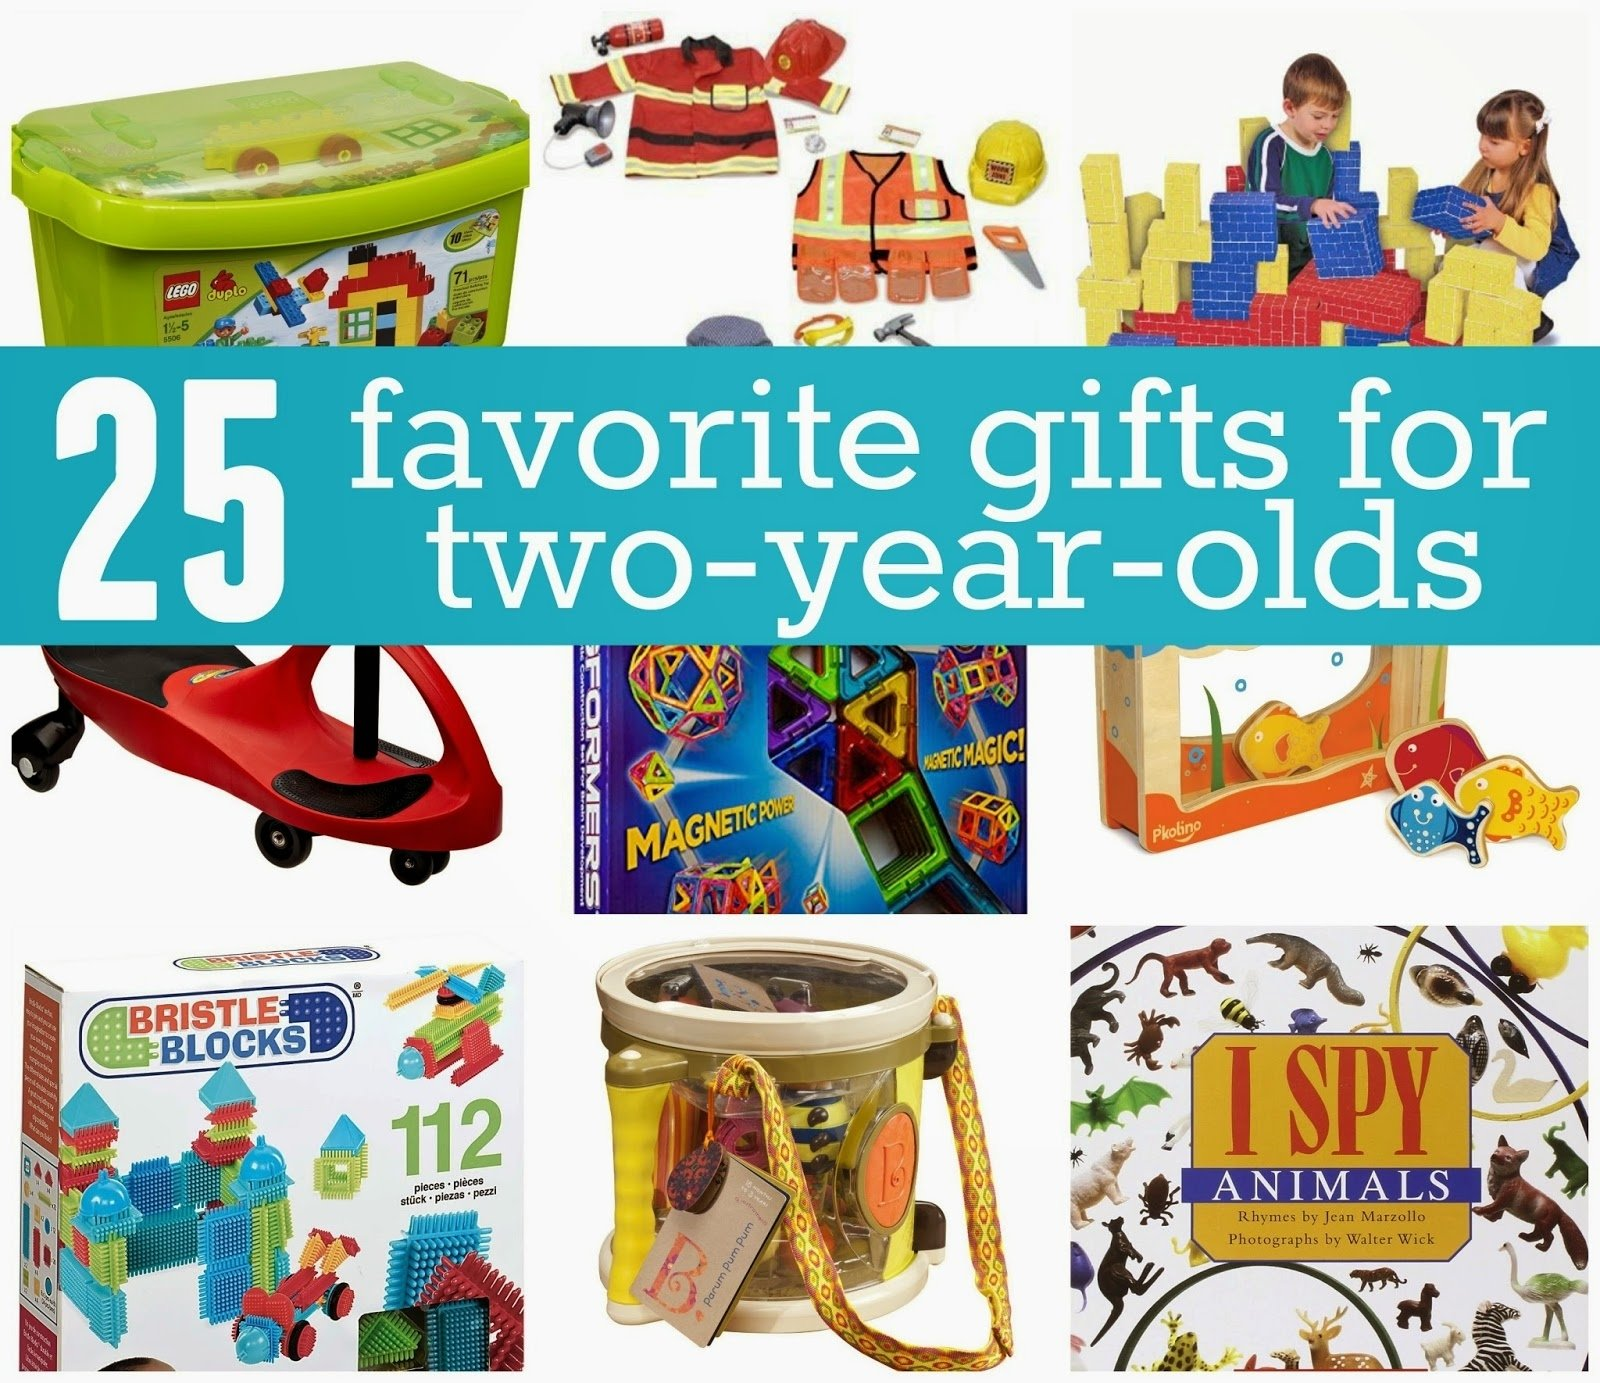 10 Nice Gift Ideas For 2 Year Olds toddler approved favorite gifts for 2 year olds 4